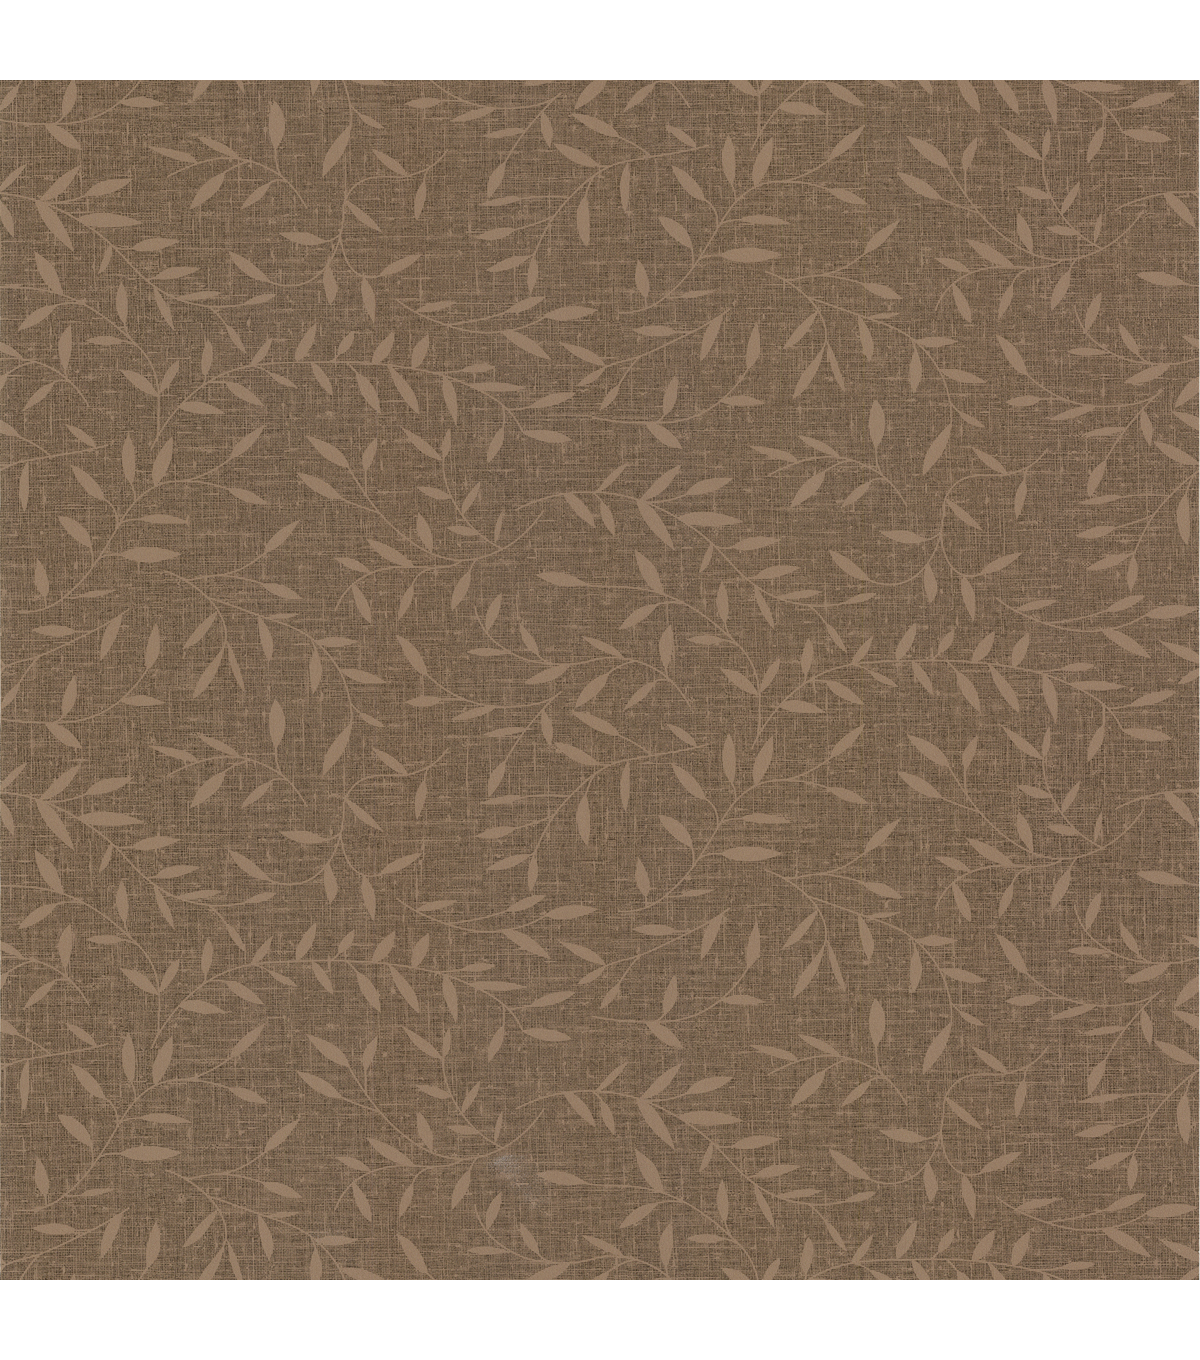 Ascella Brown Leaf Texture Wallpaper